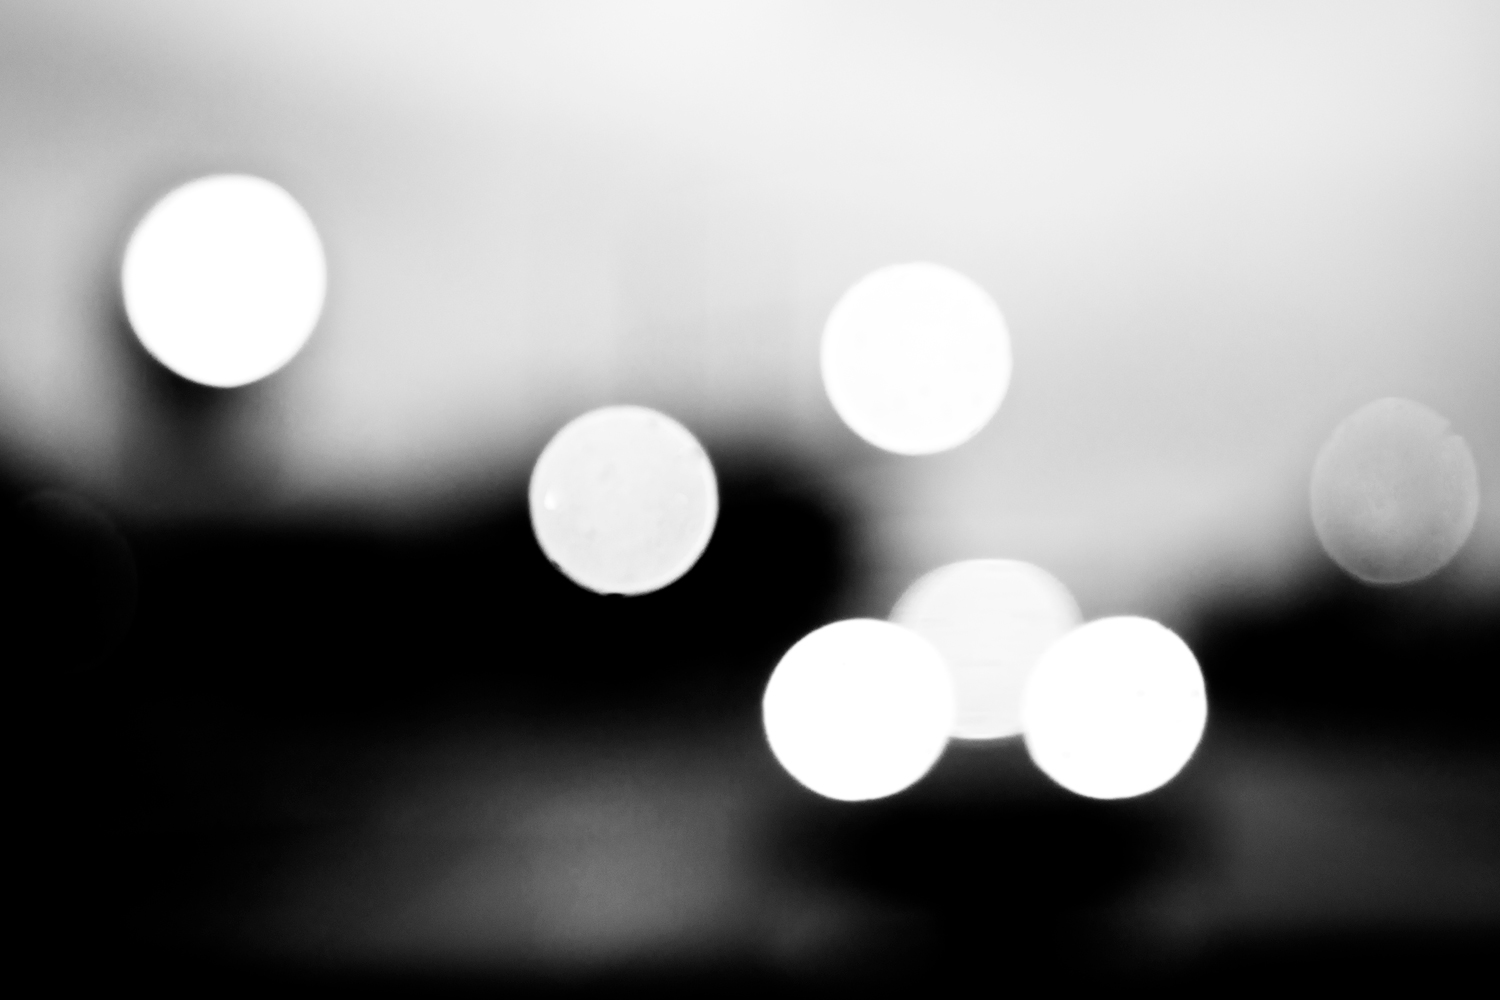 Out of focus lights arranged in triangle patterns